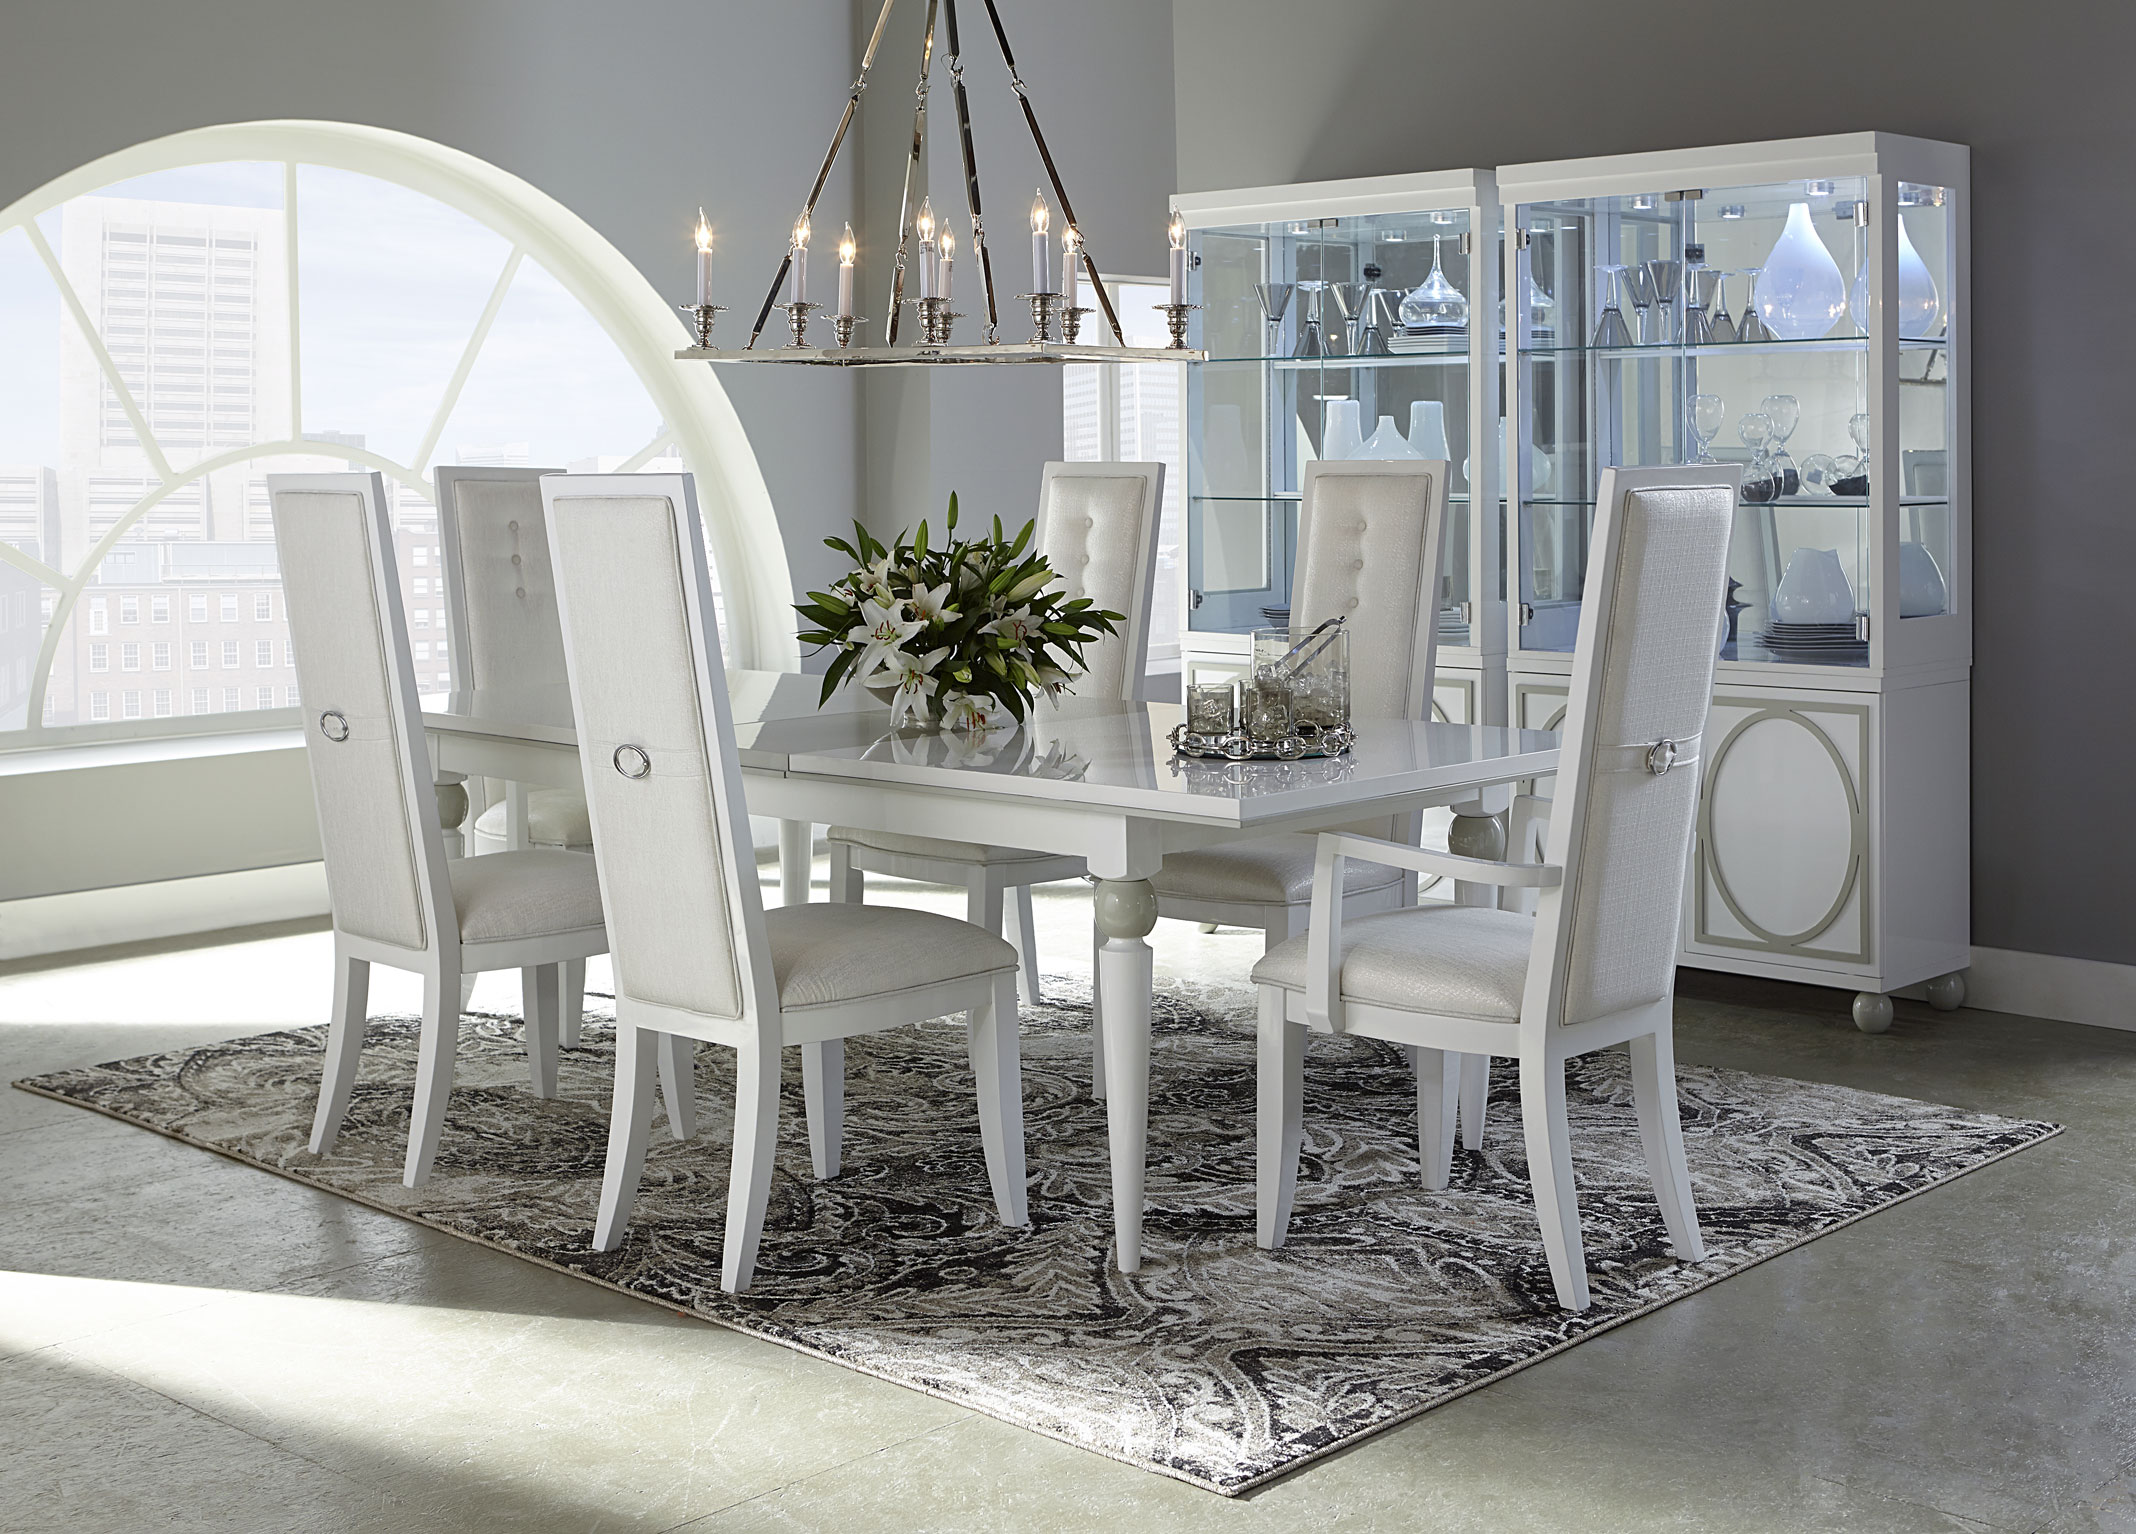 wonderful dining table set in white by aico furniture on floral rug for dining room decor ideas